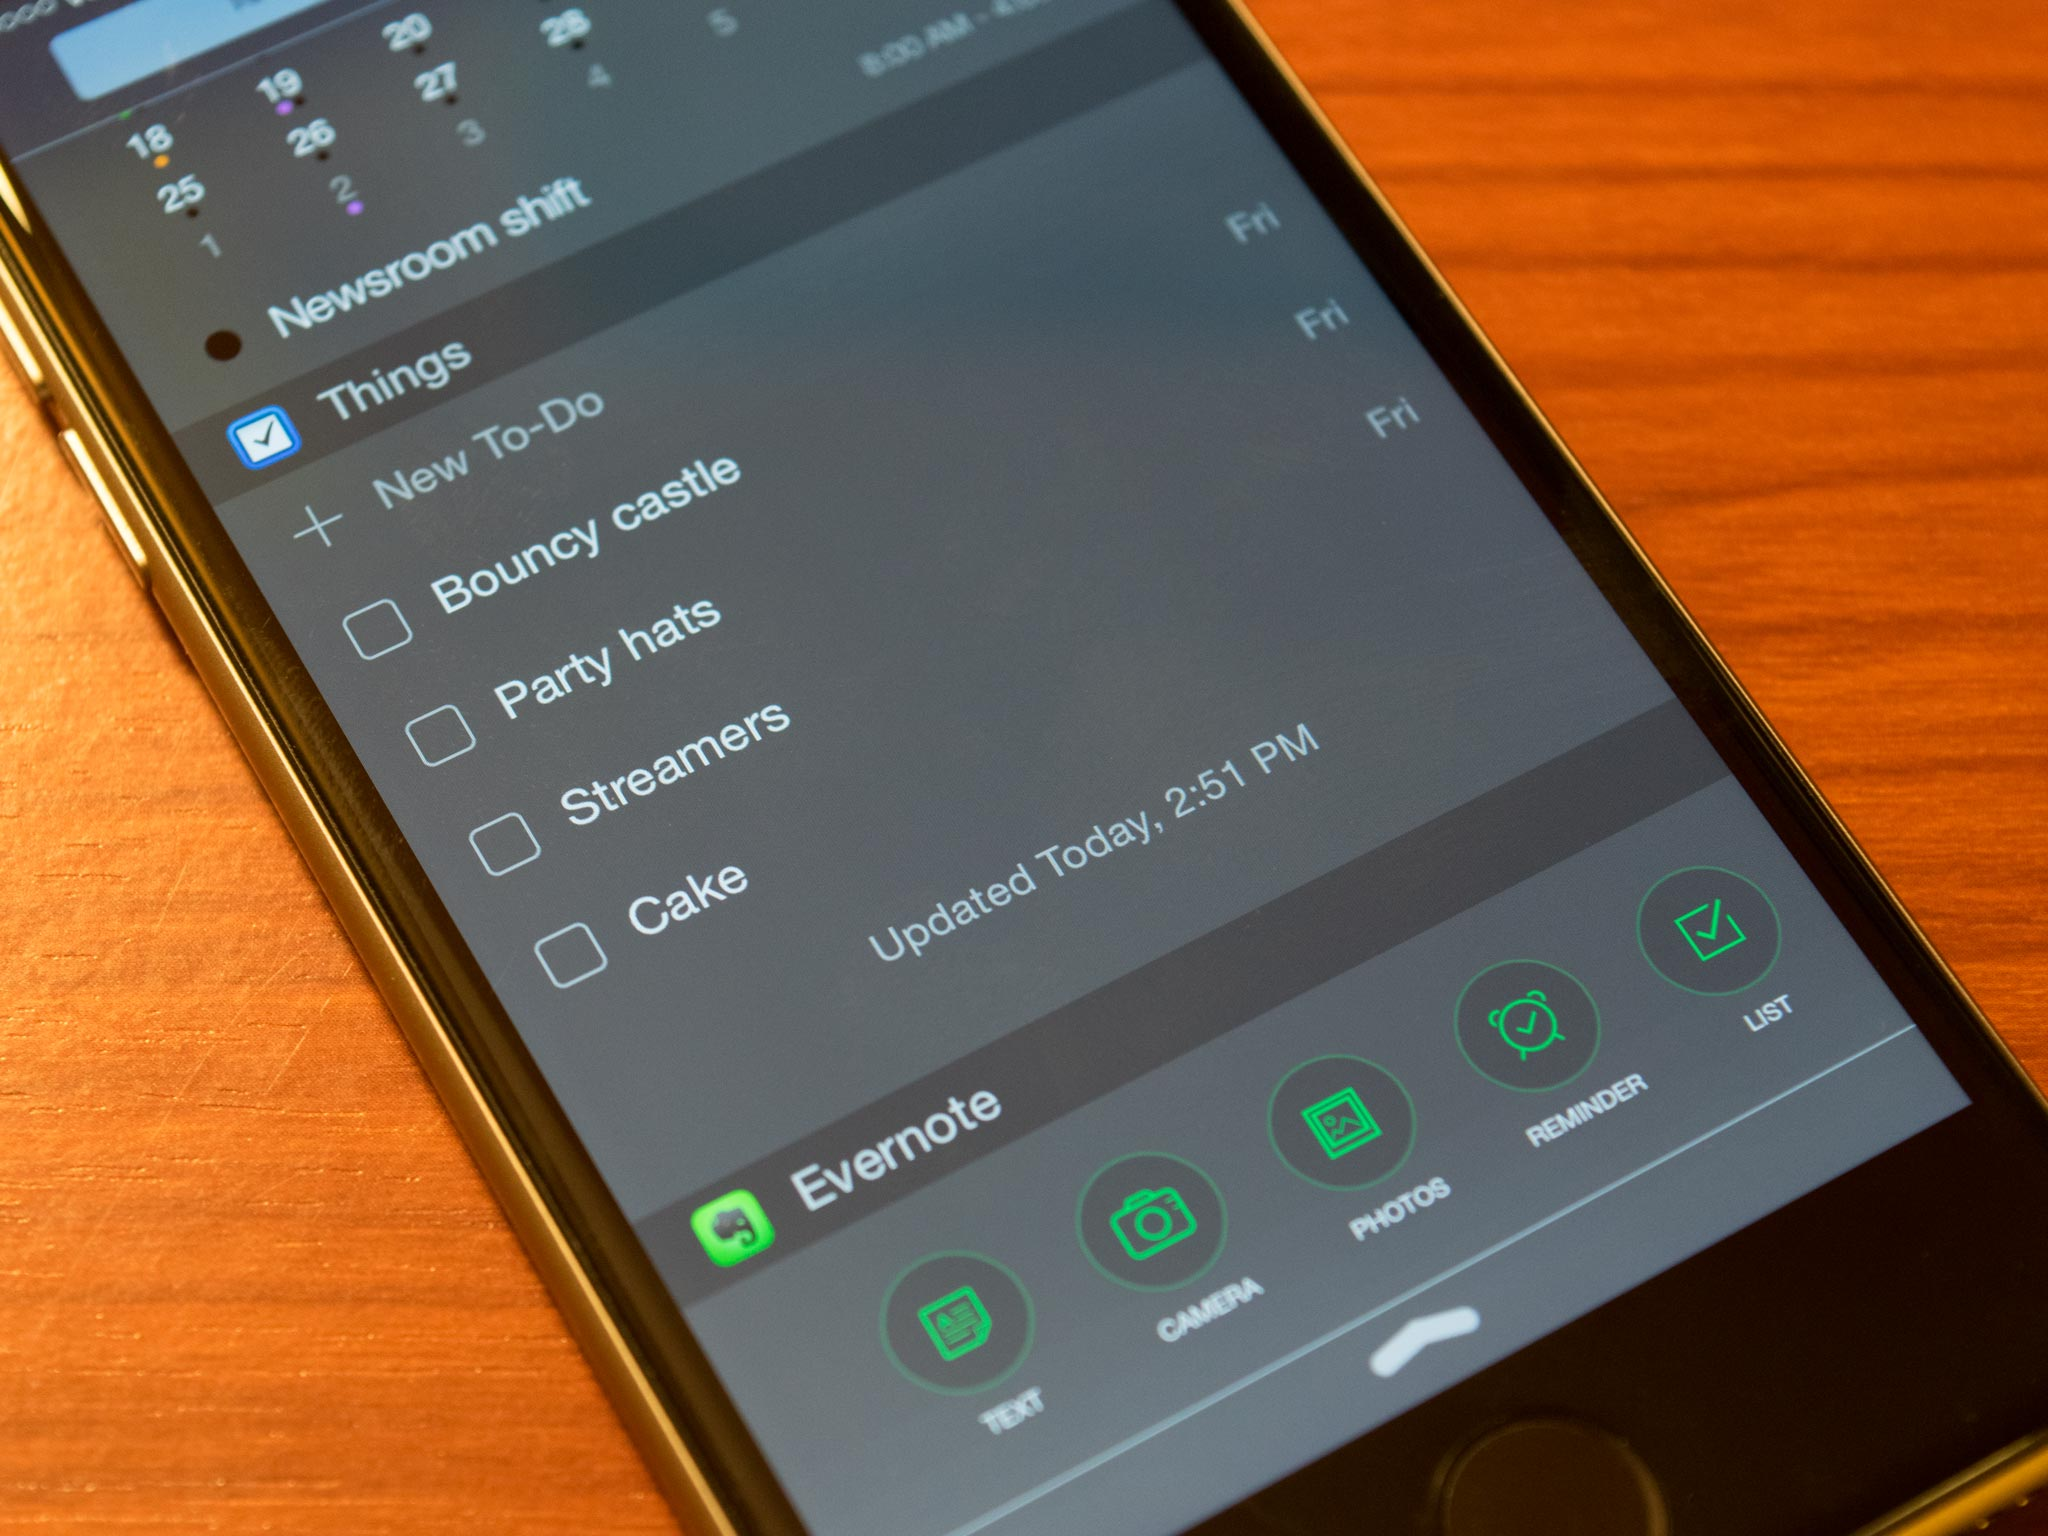 Things for iPhone and iPad updated with Notification Center widget, more